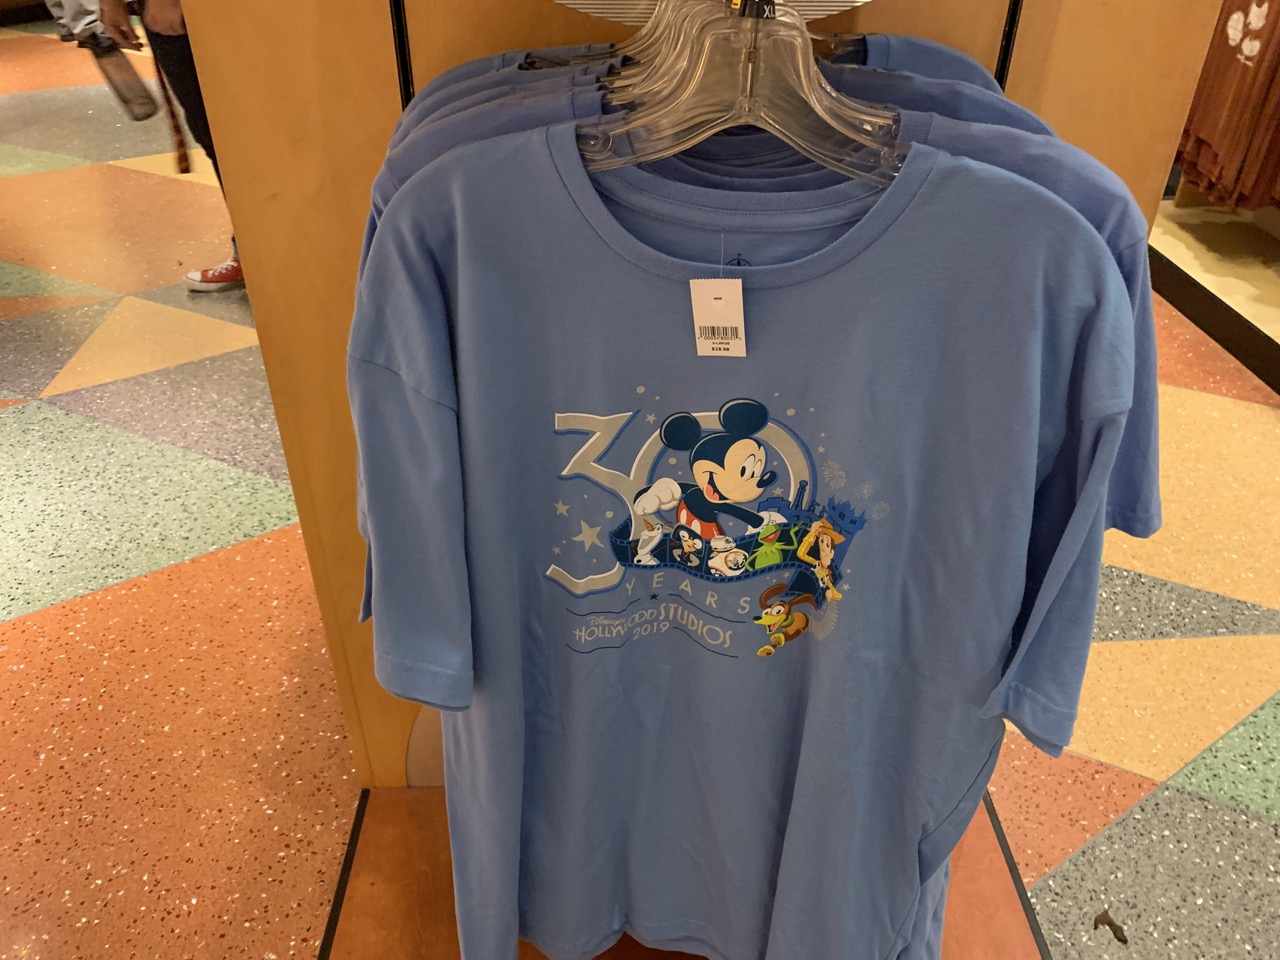 disney world trip report early summer 2019 day two 30th merchandise 03.jpeg